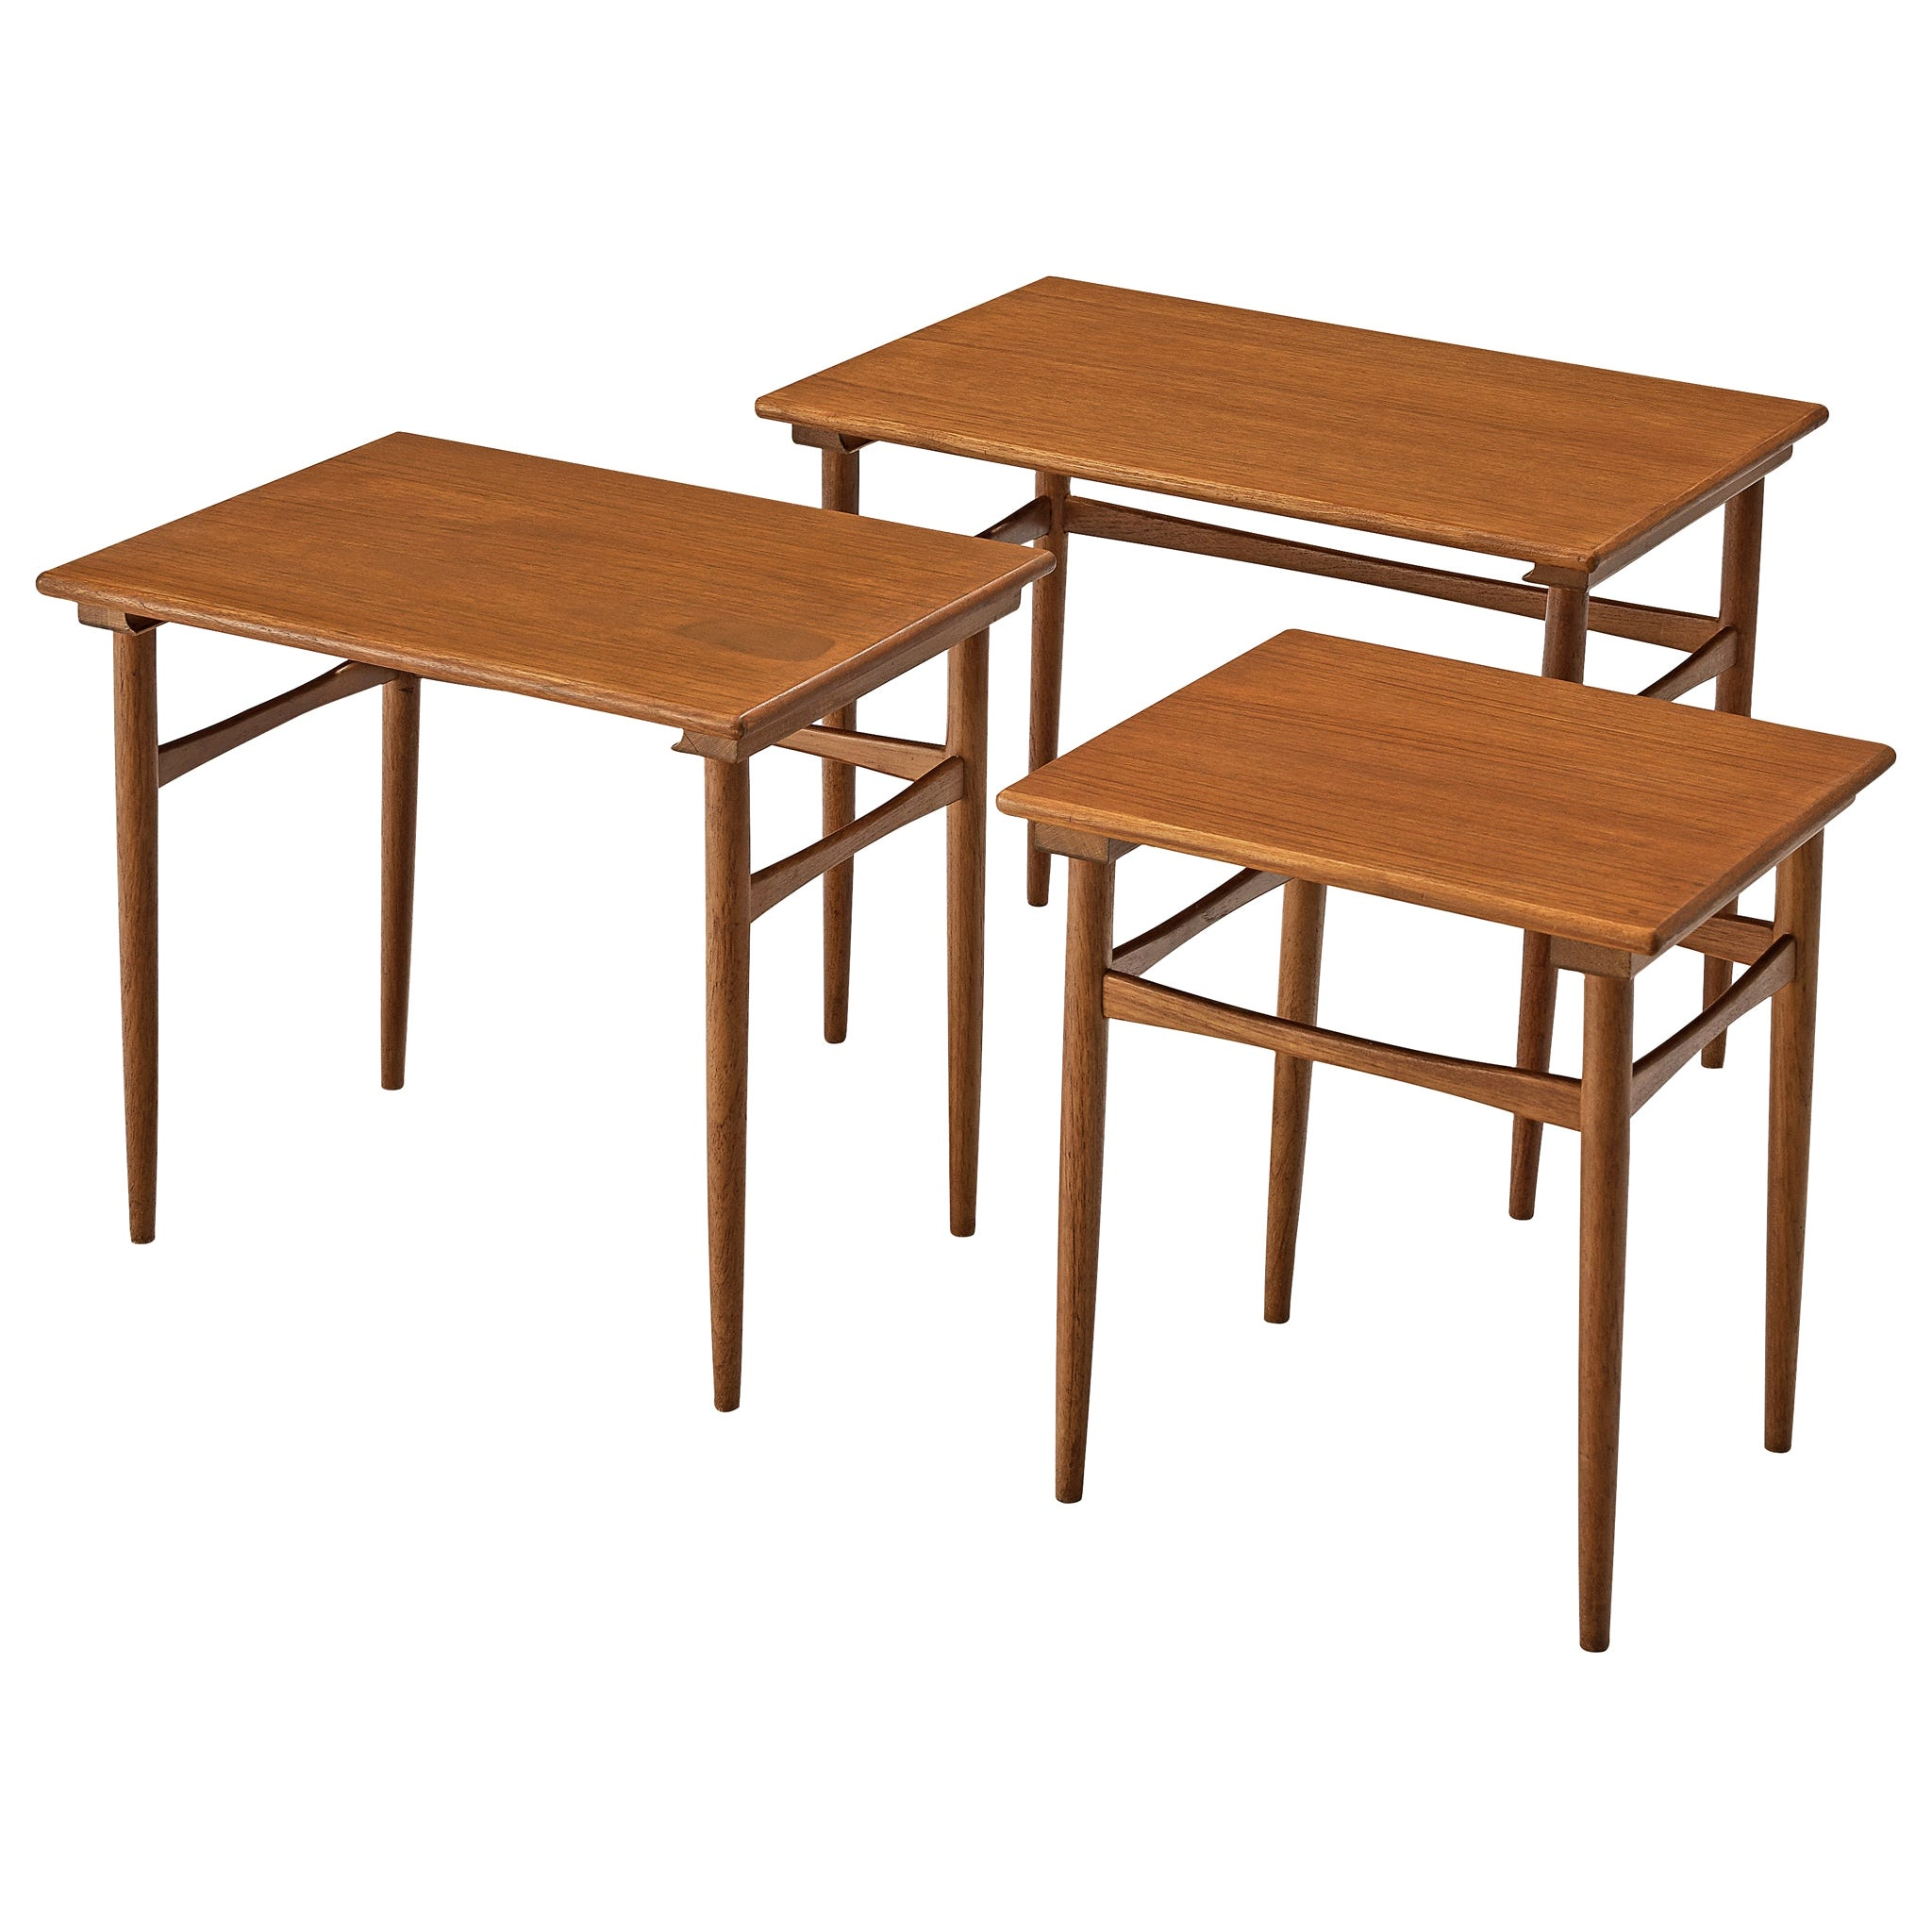 Set of Three Danish Nesting Tables in Teak